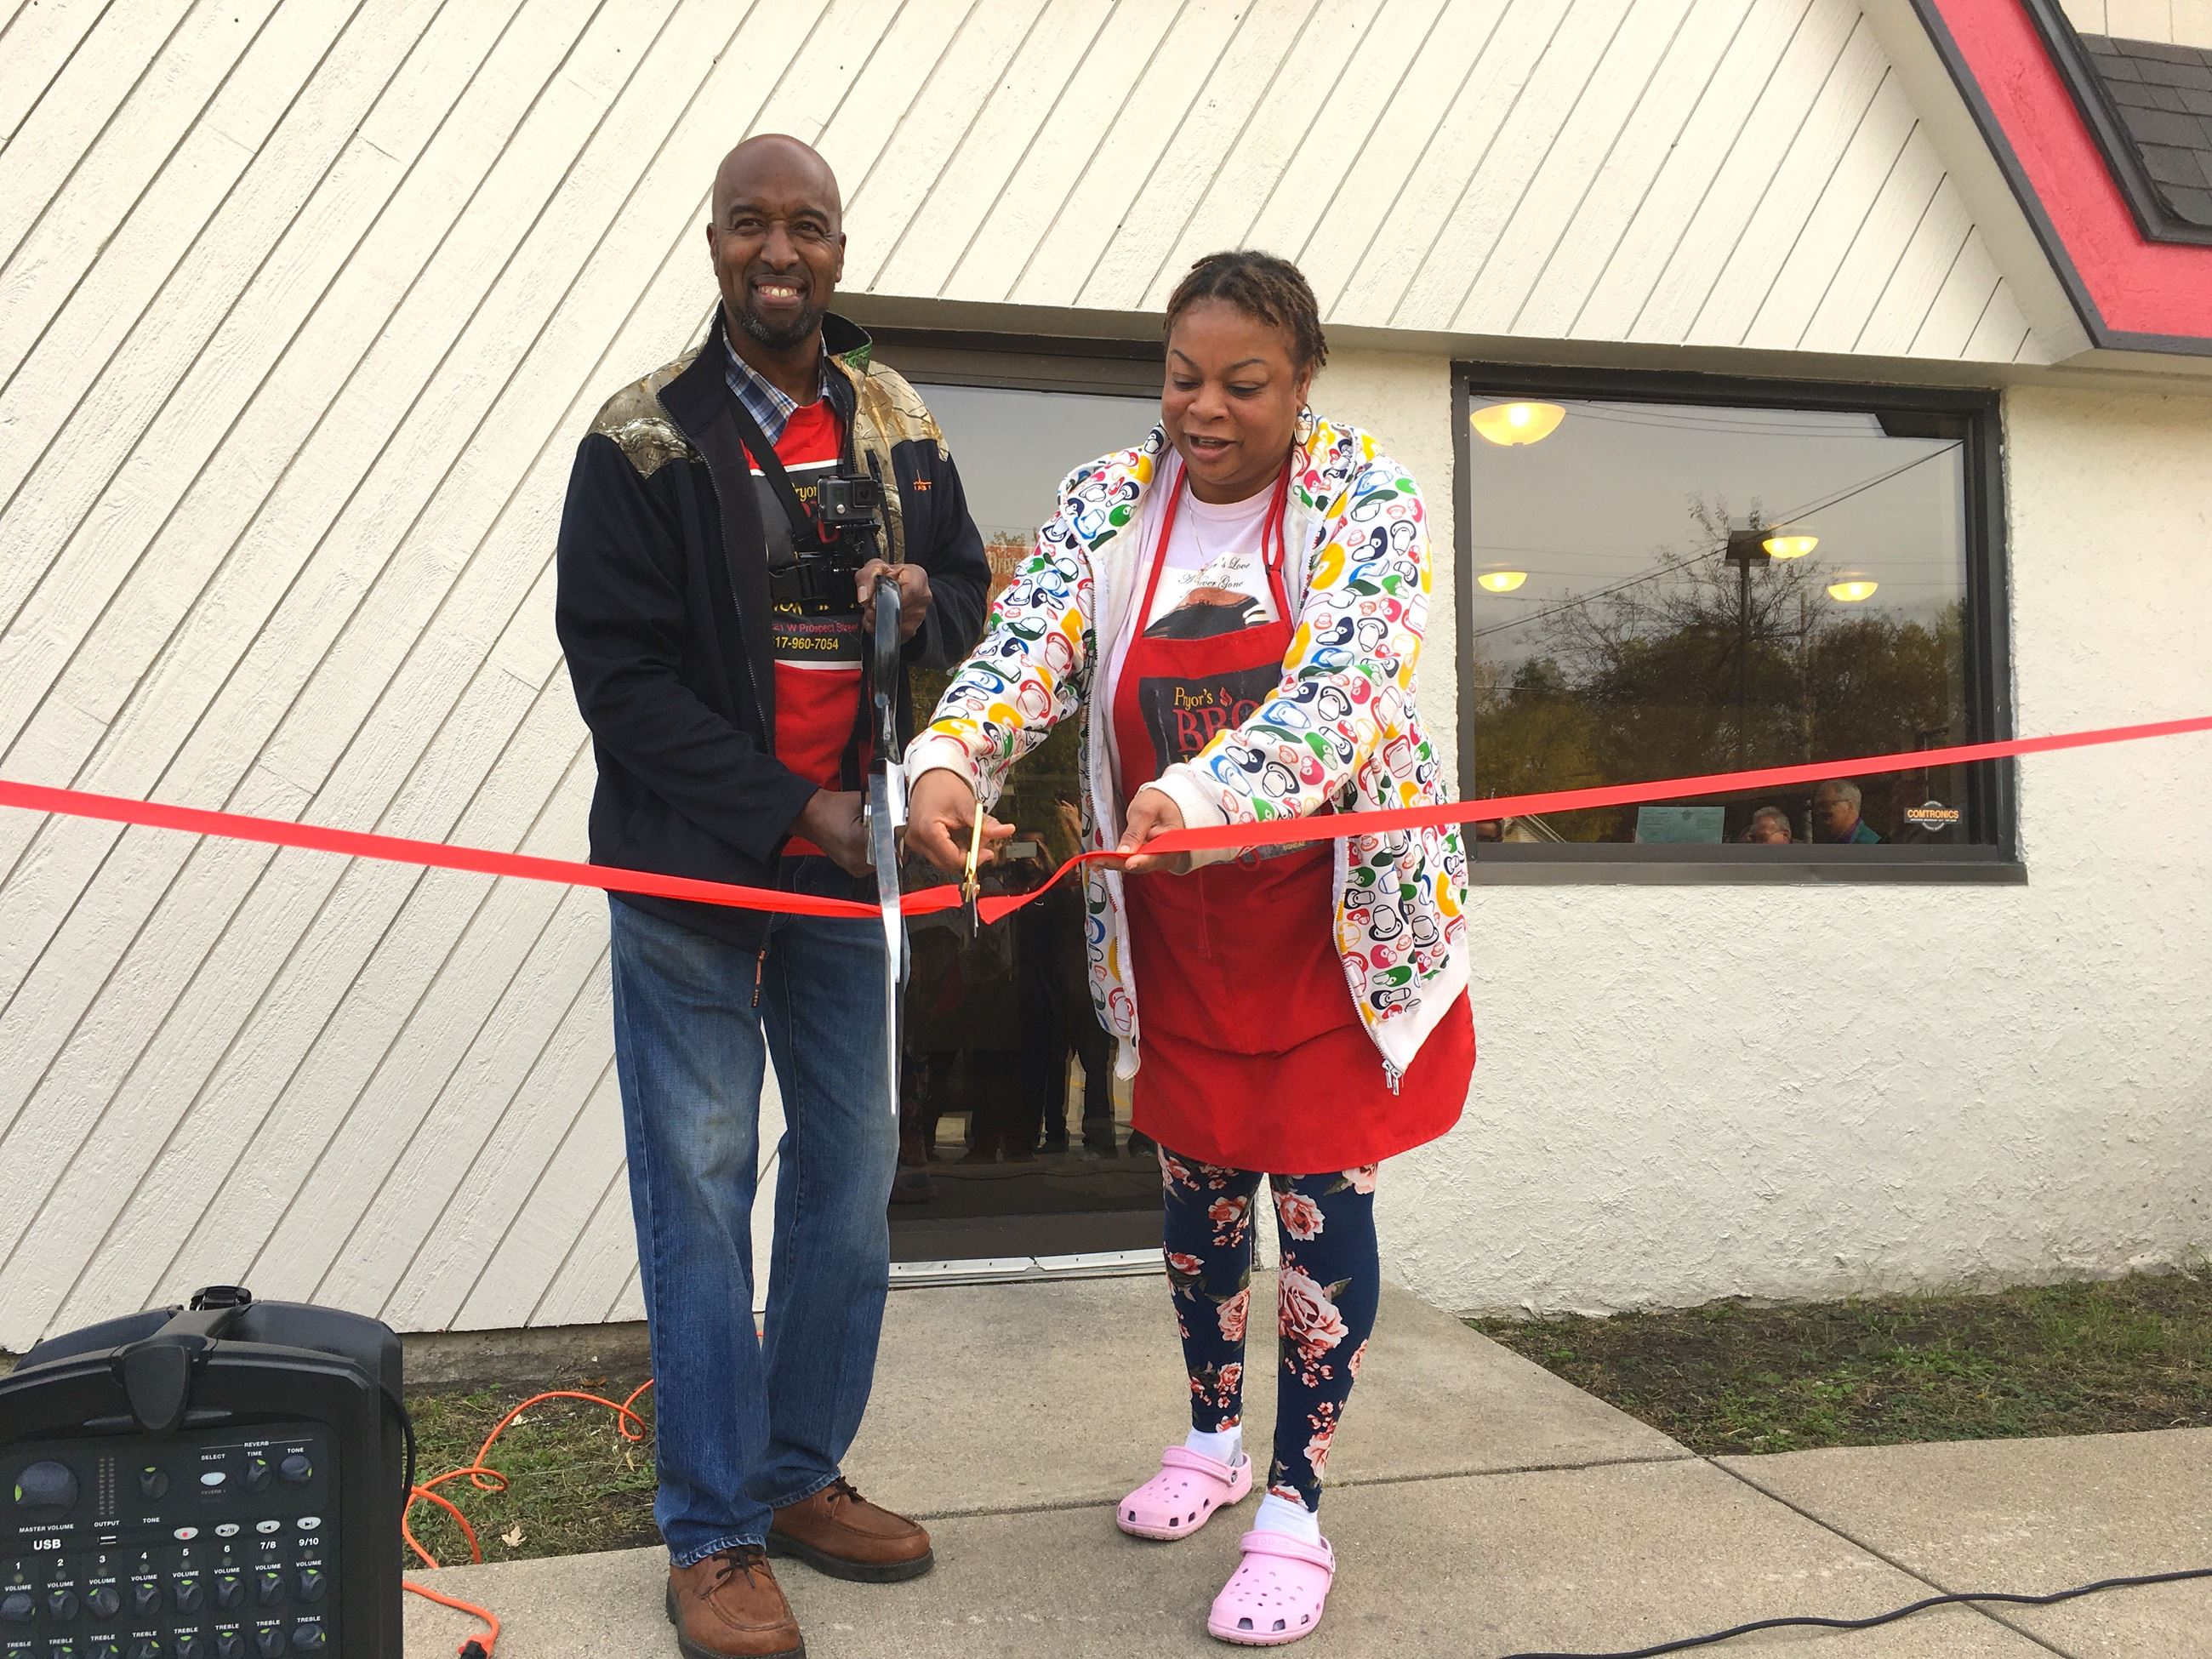 Larry and Stephanie Pryor cut the ribbon at a ribbon cutting ceremony in the fall